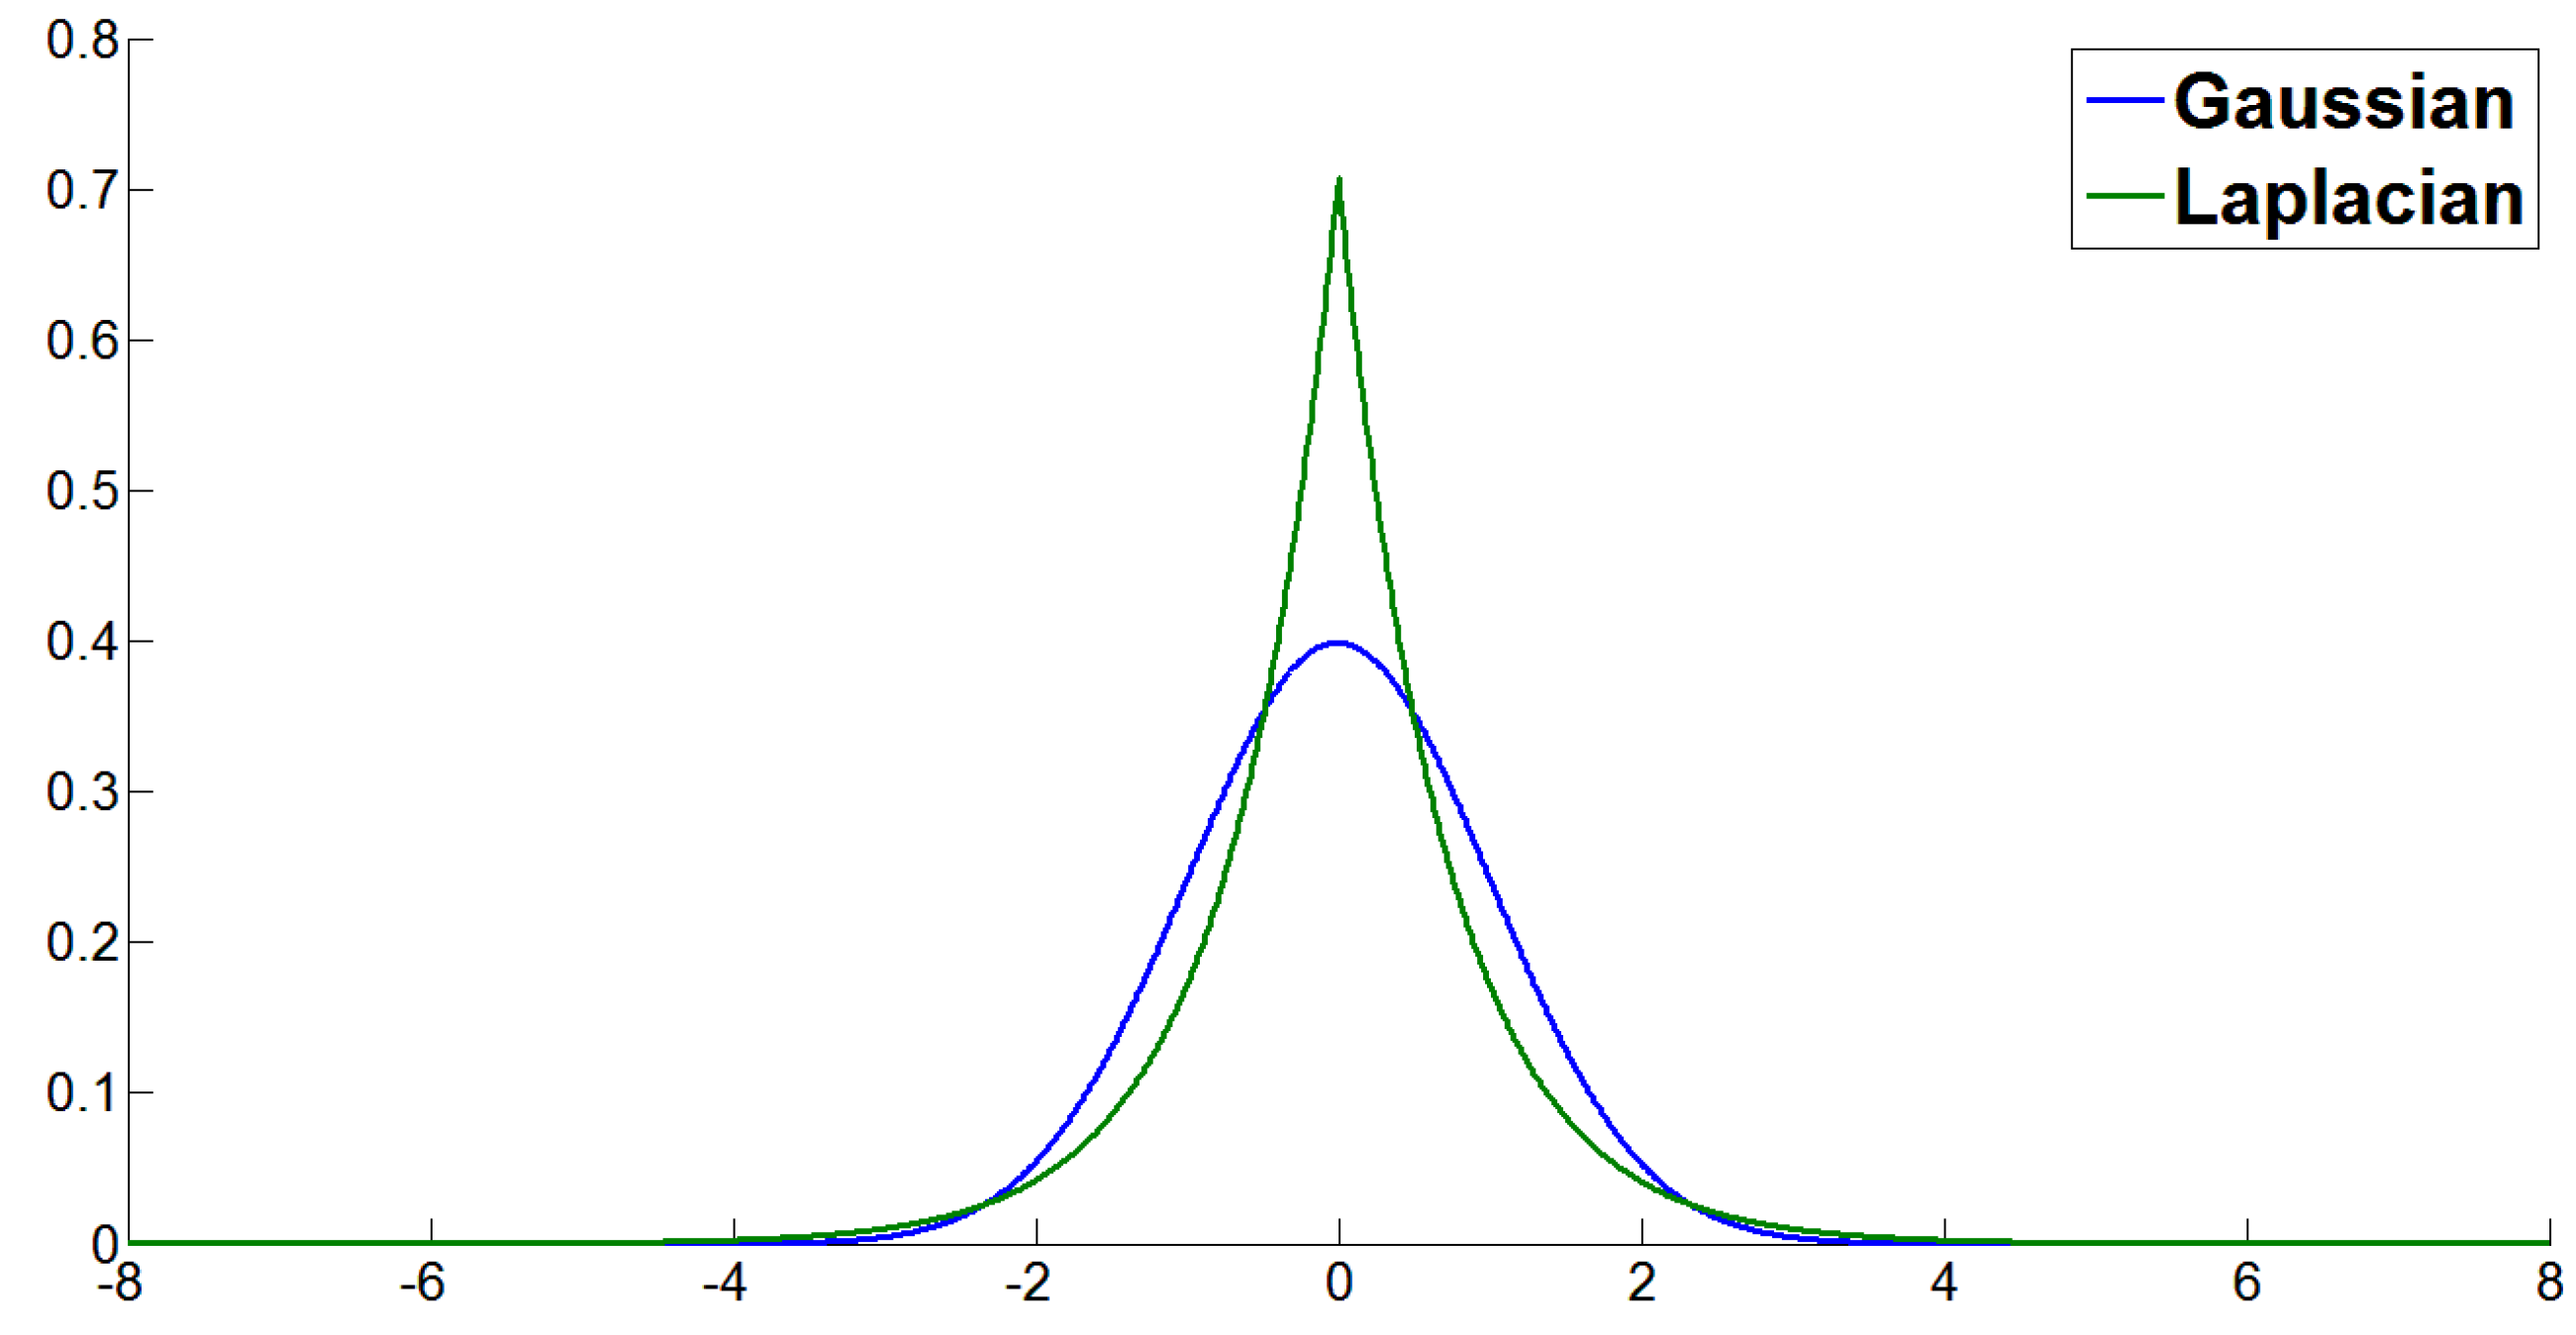 Figure 1: Gaussian and Laplacian distributions [2]